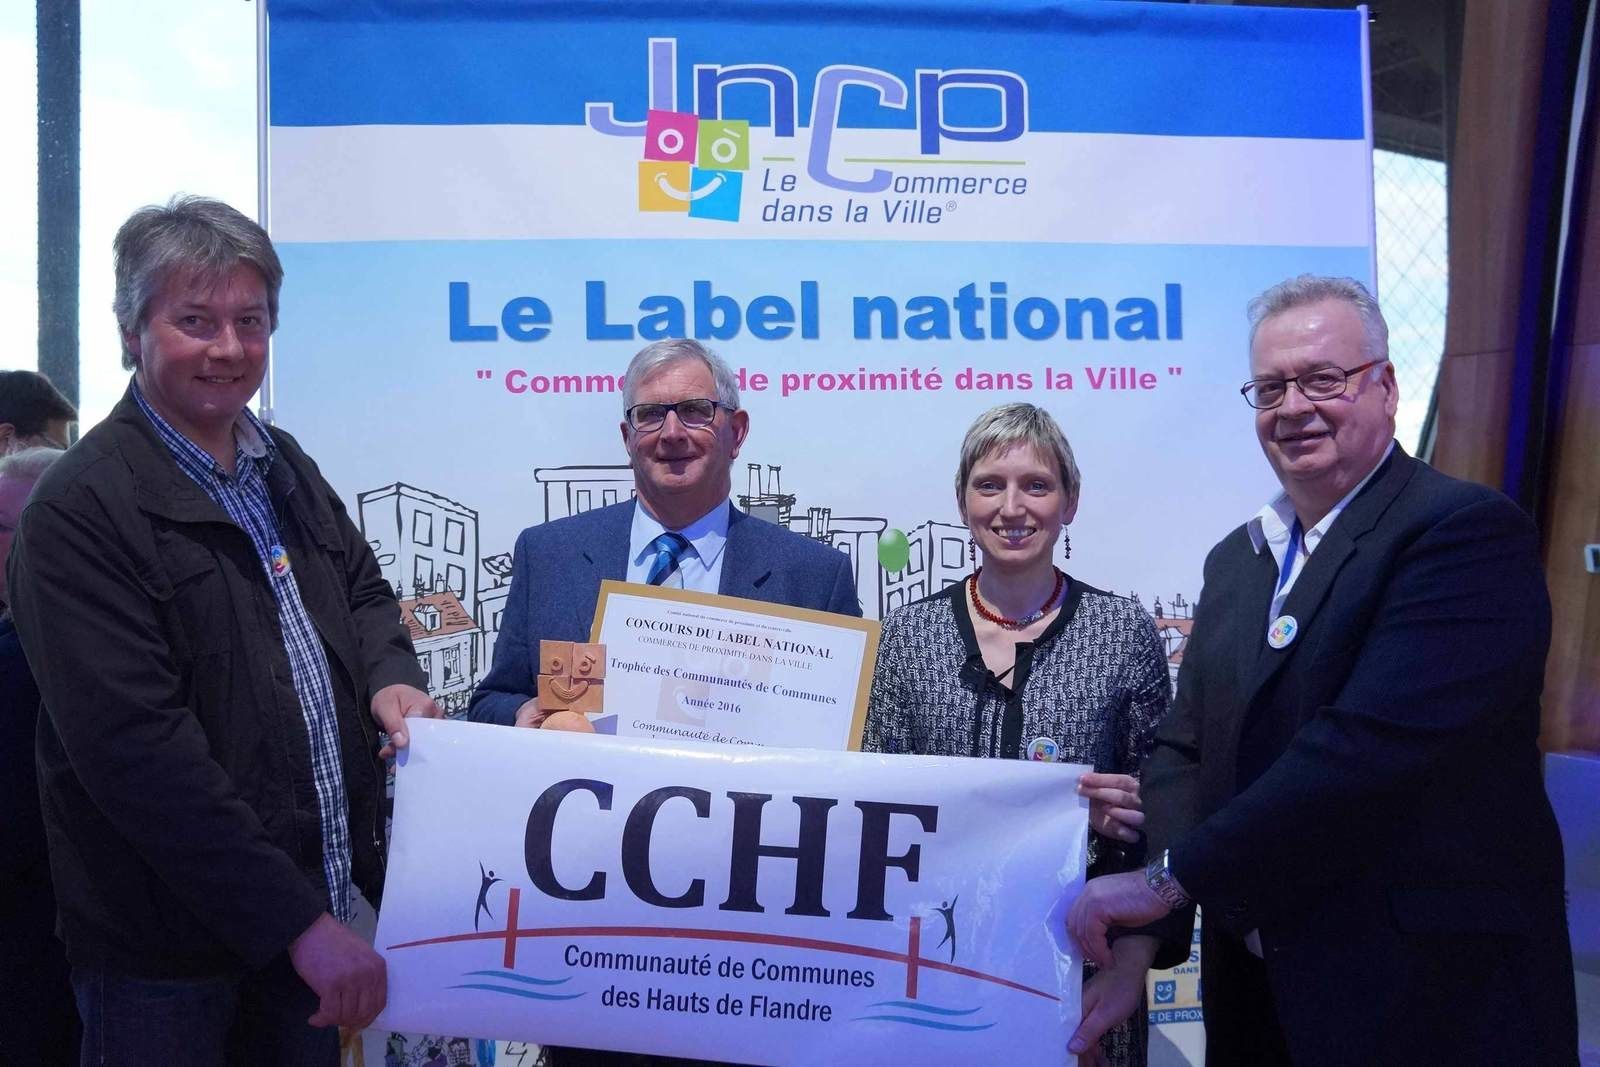 La CCHF décroche le premier prix national à Paris !